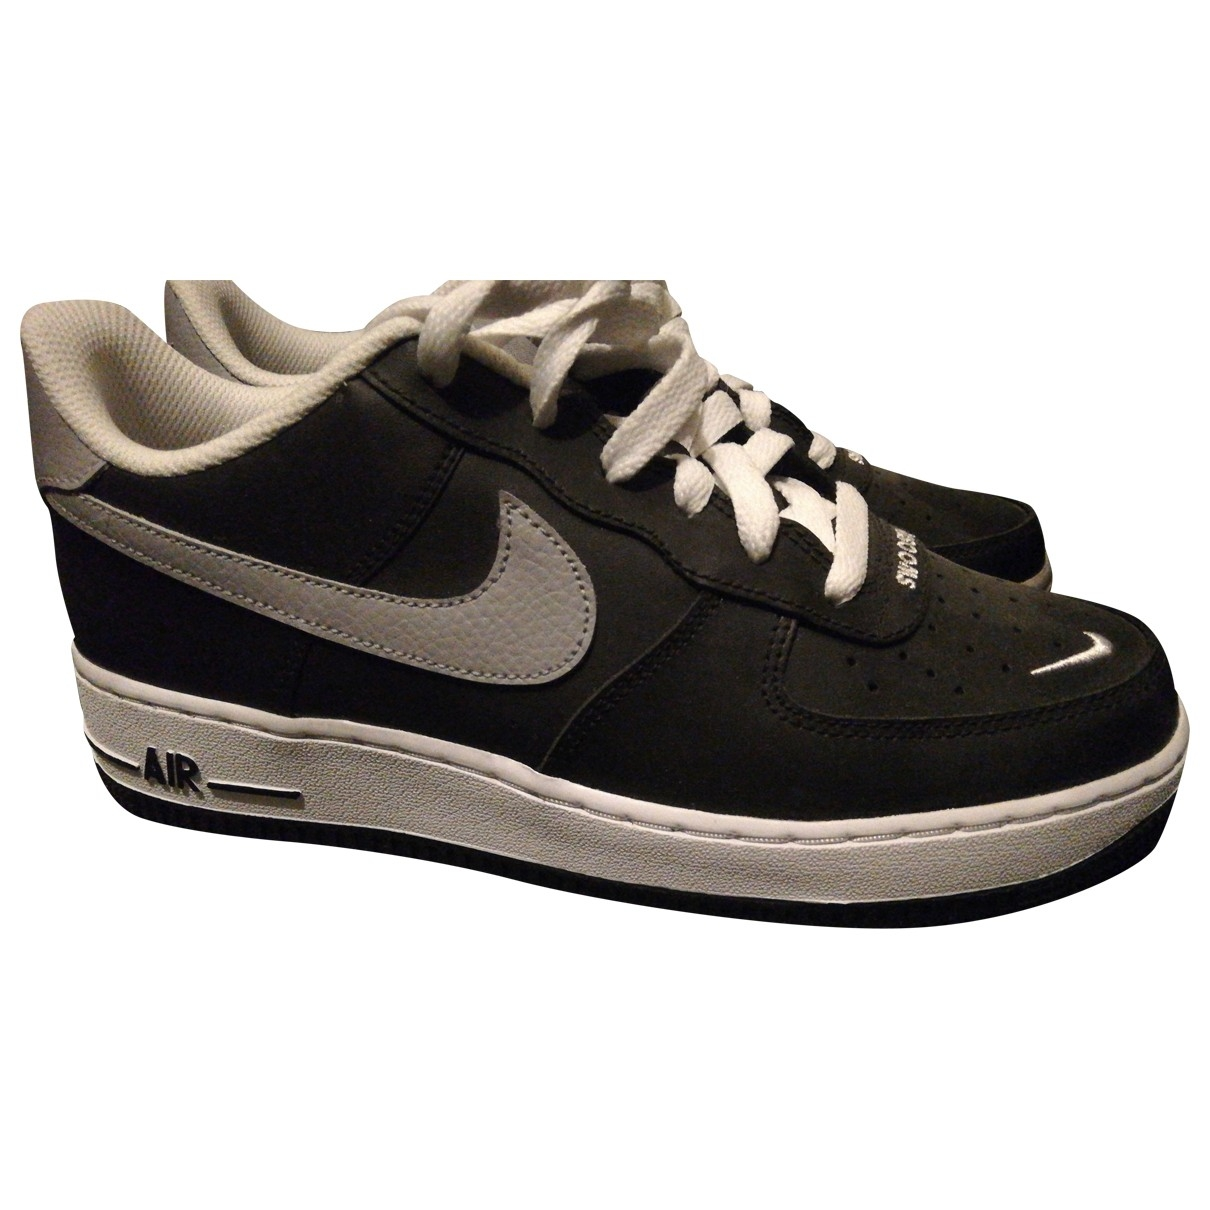 Nike Air Force 1 Black Leather Trainers for Kids 38 EU